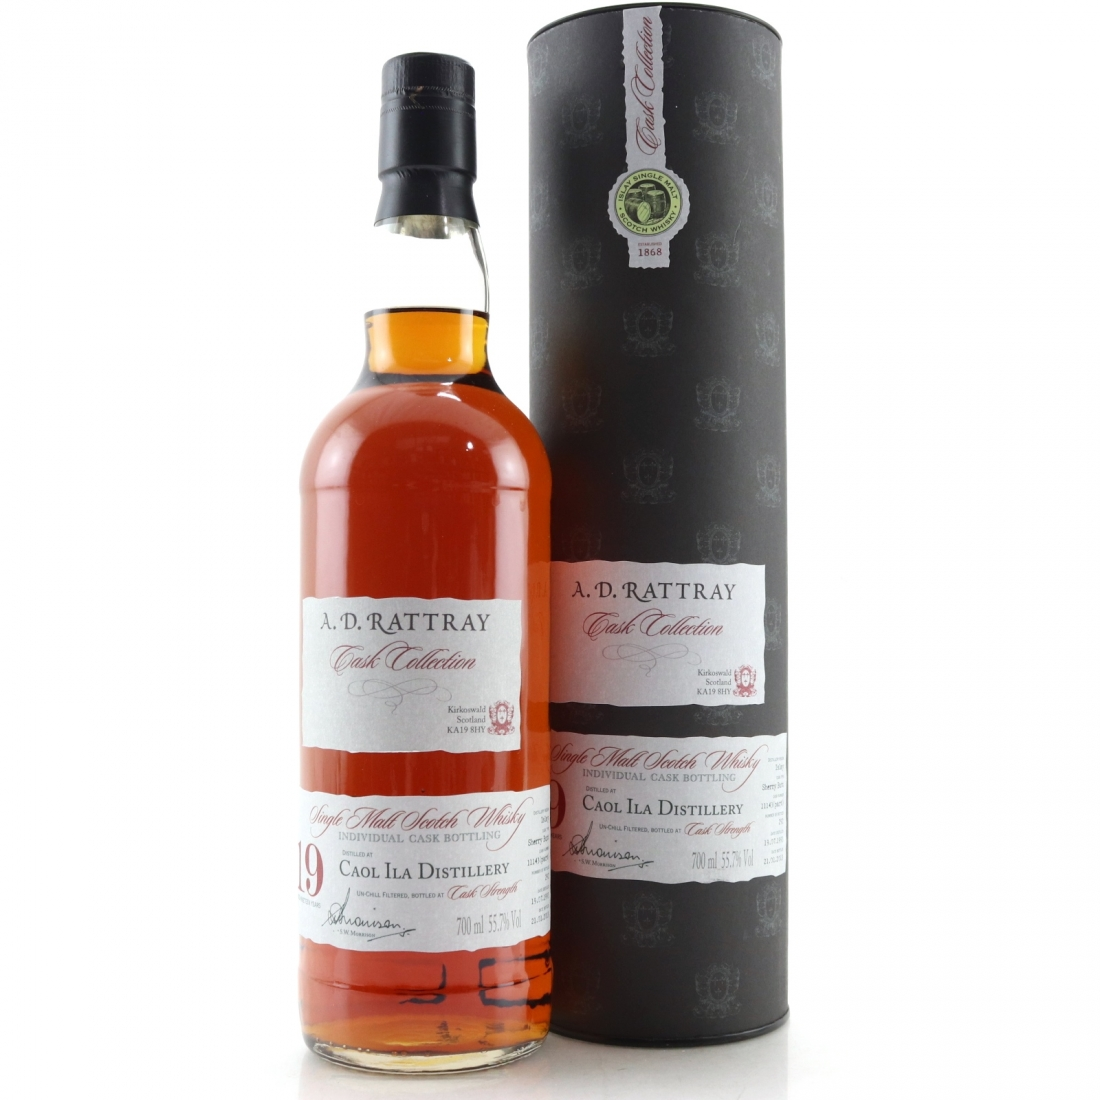 Caol Ila 1993 A.D. Rattray 19 Year Old